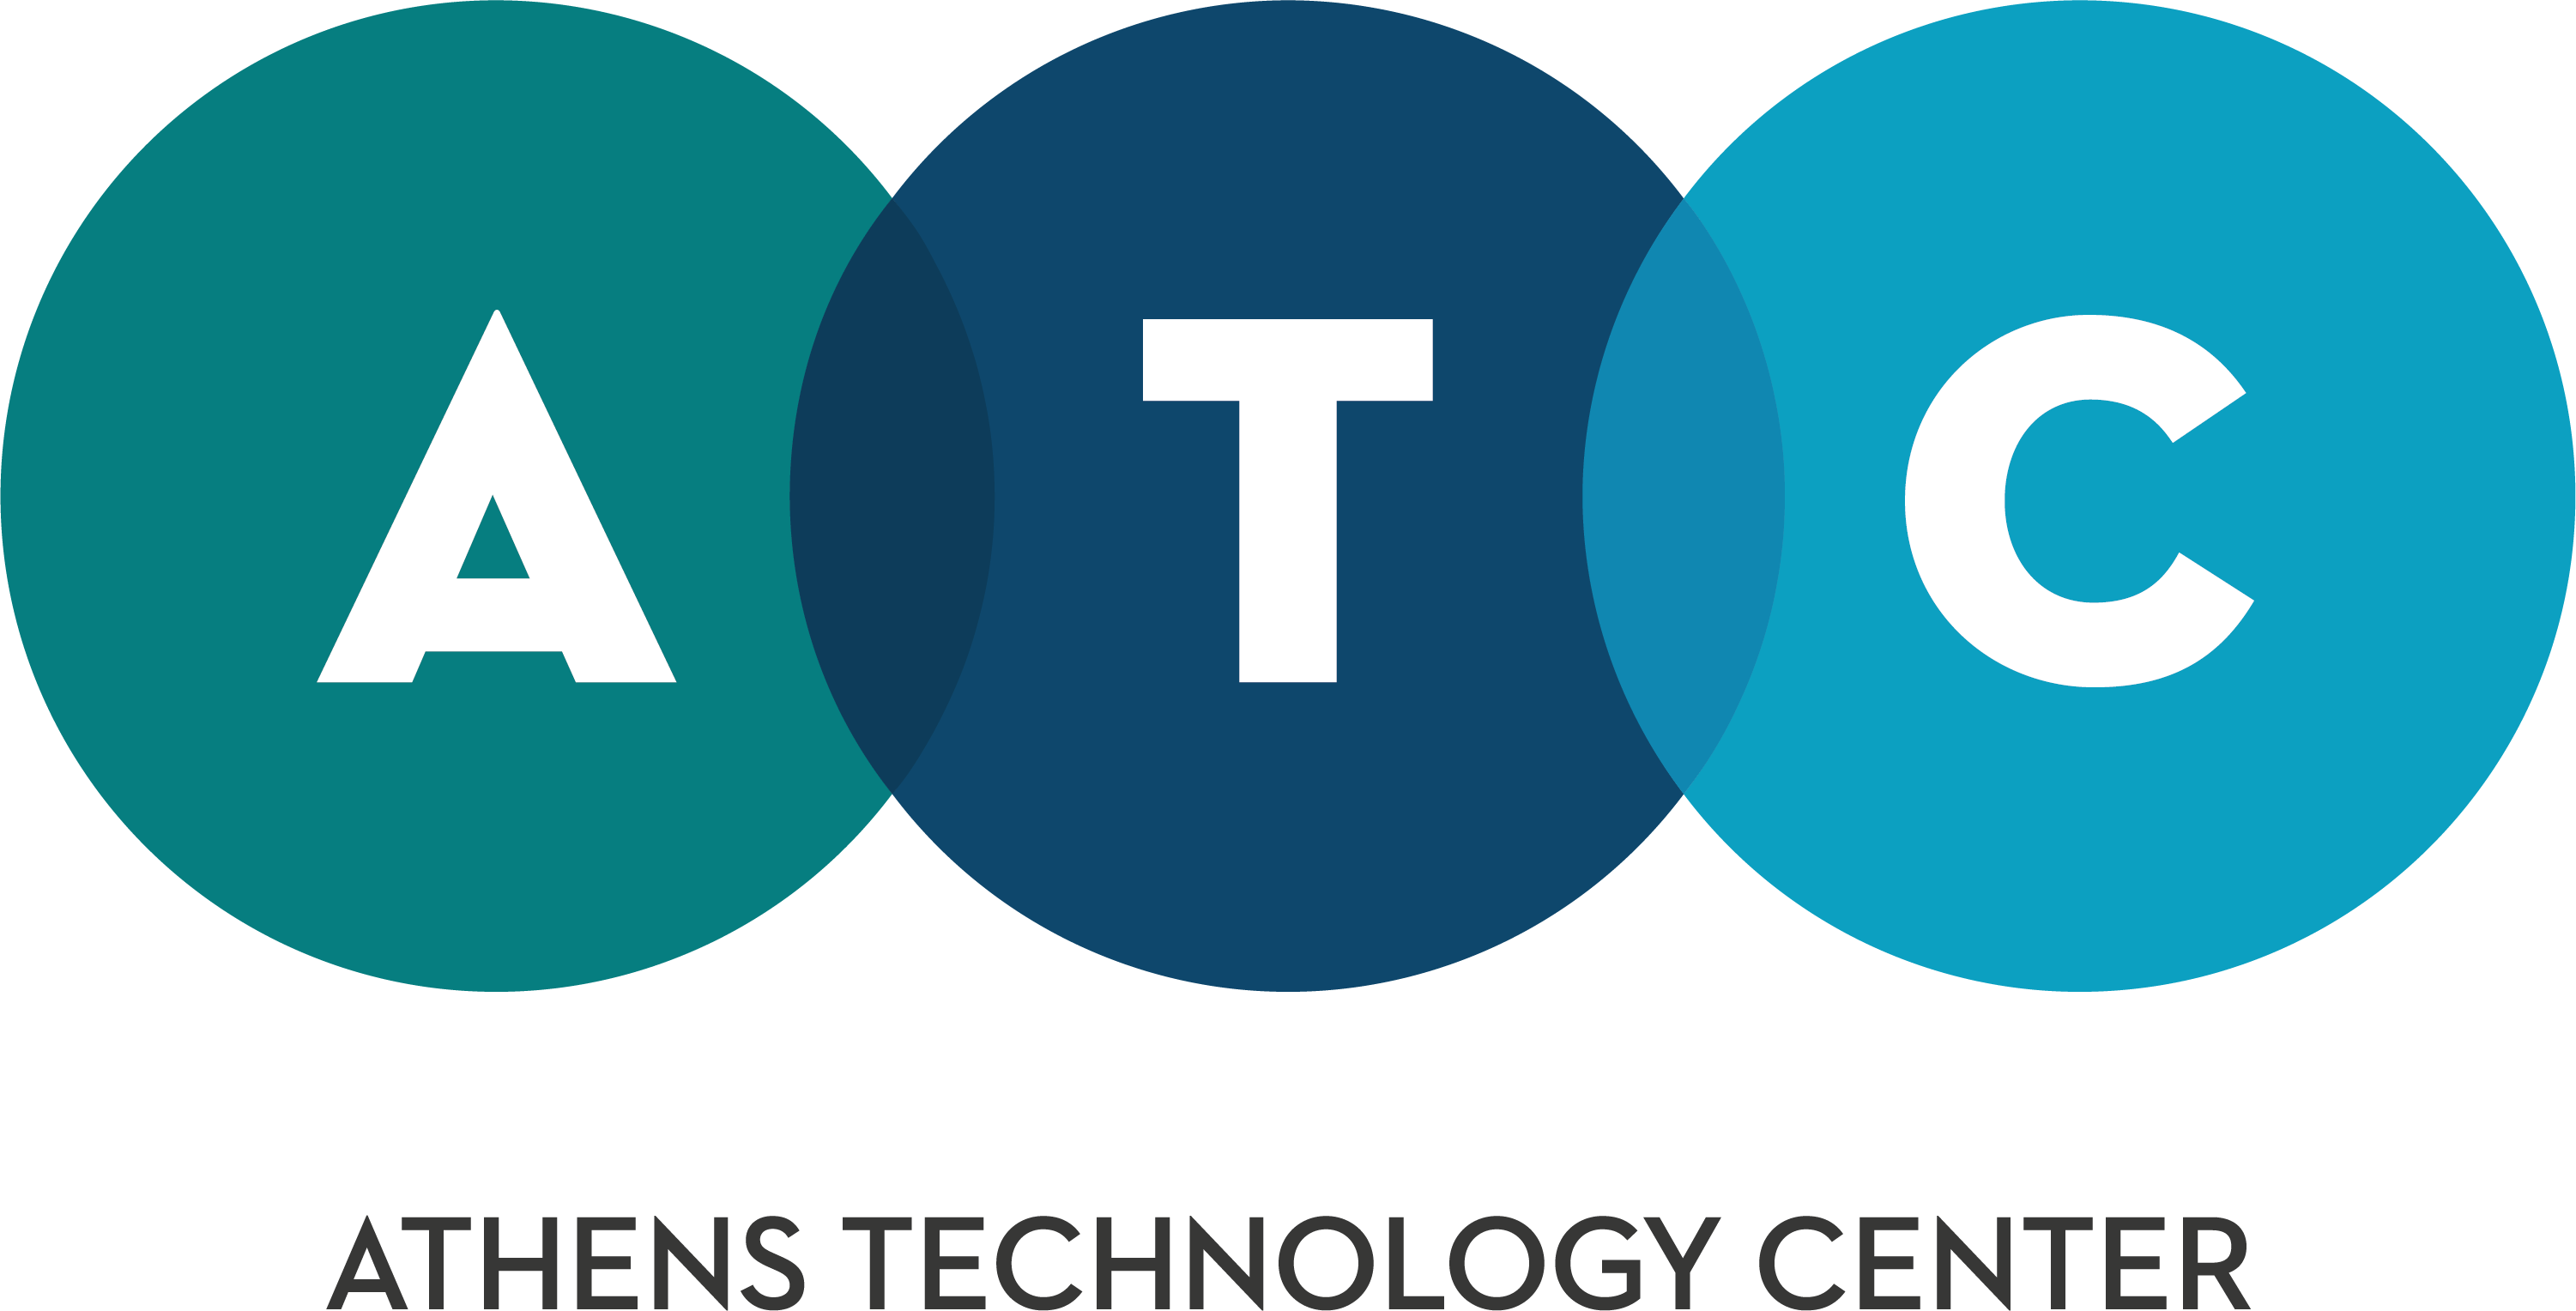 Athens Technology Center (ATC)